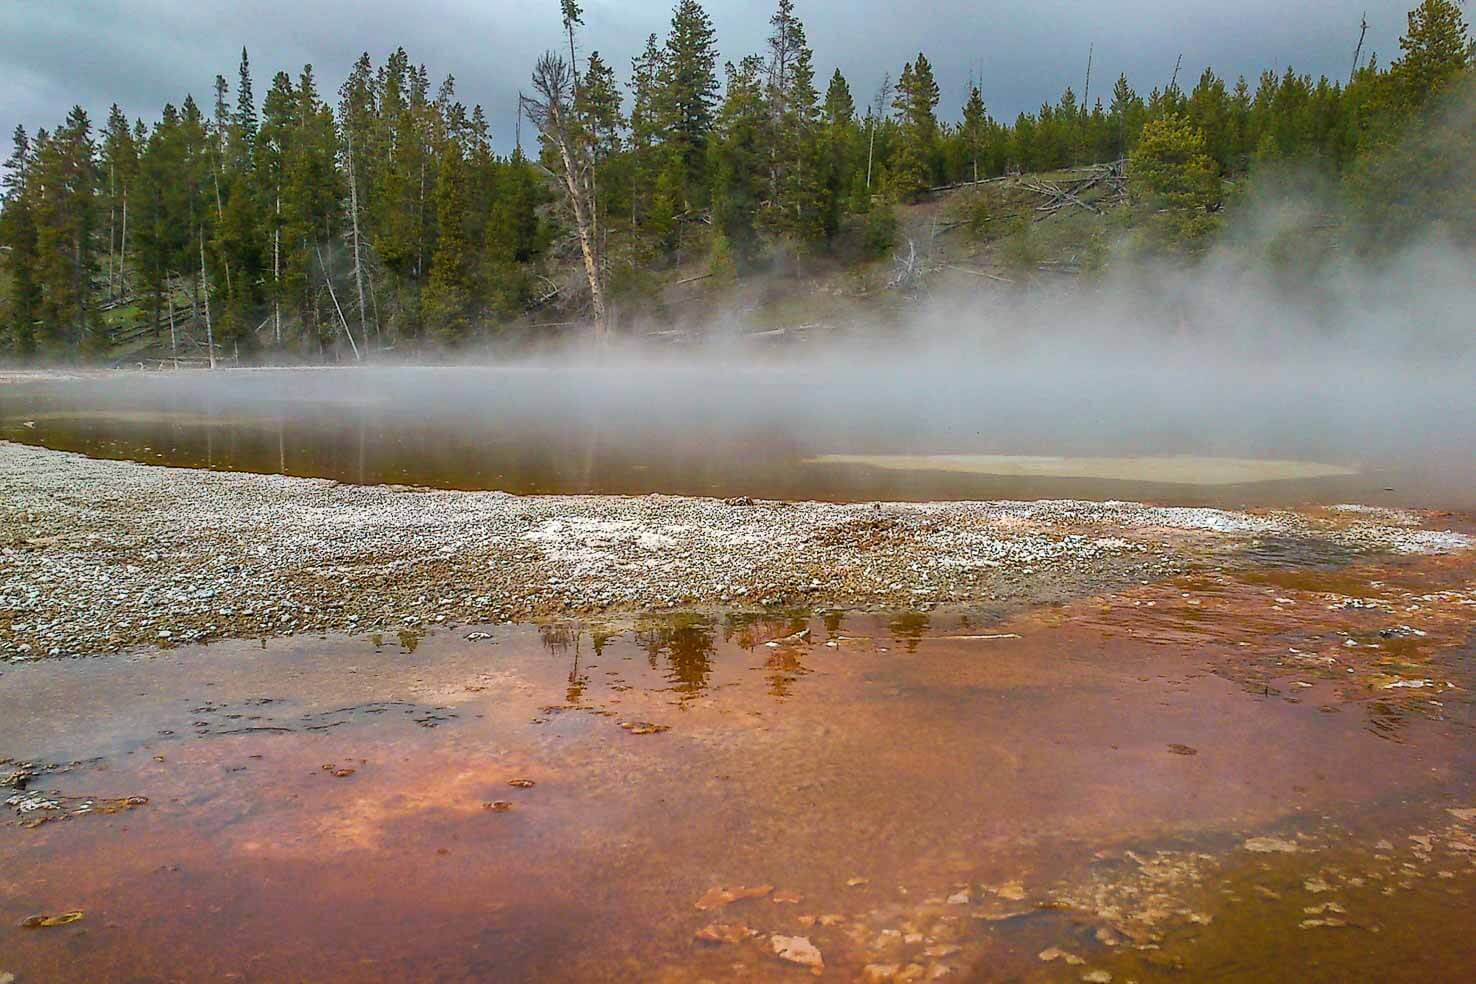 yellowstone national park essay Groundwater features: geysers of yellowstone national park the groundwater feature that is analyzed in this essay is the geysers of yellowstone national park - groundwater features: geysers of yellowstone national park introduction.